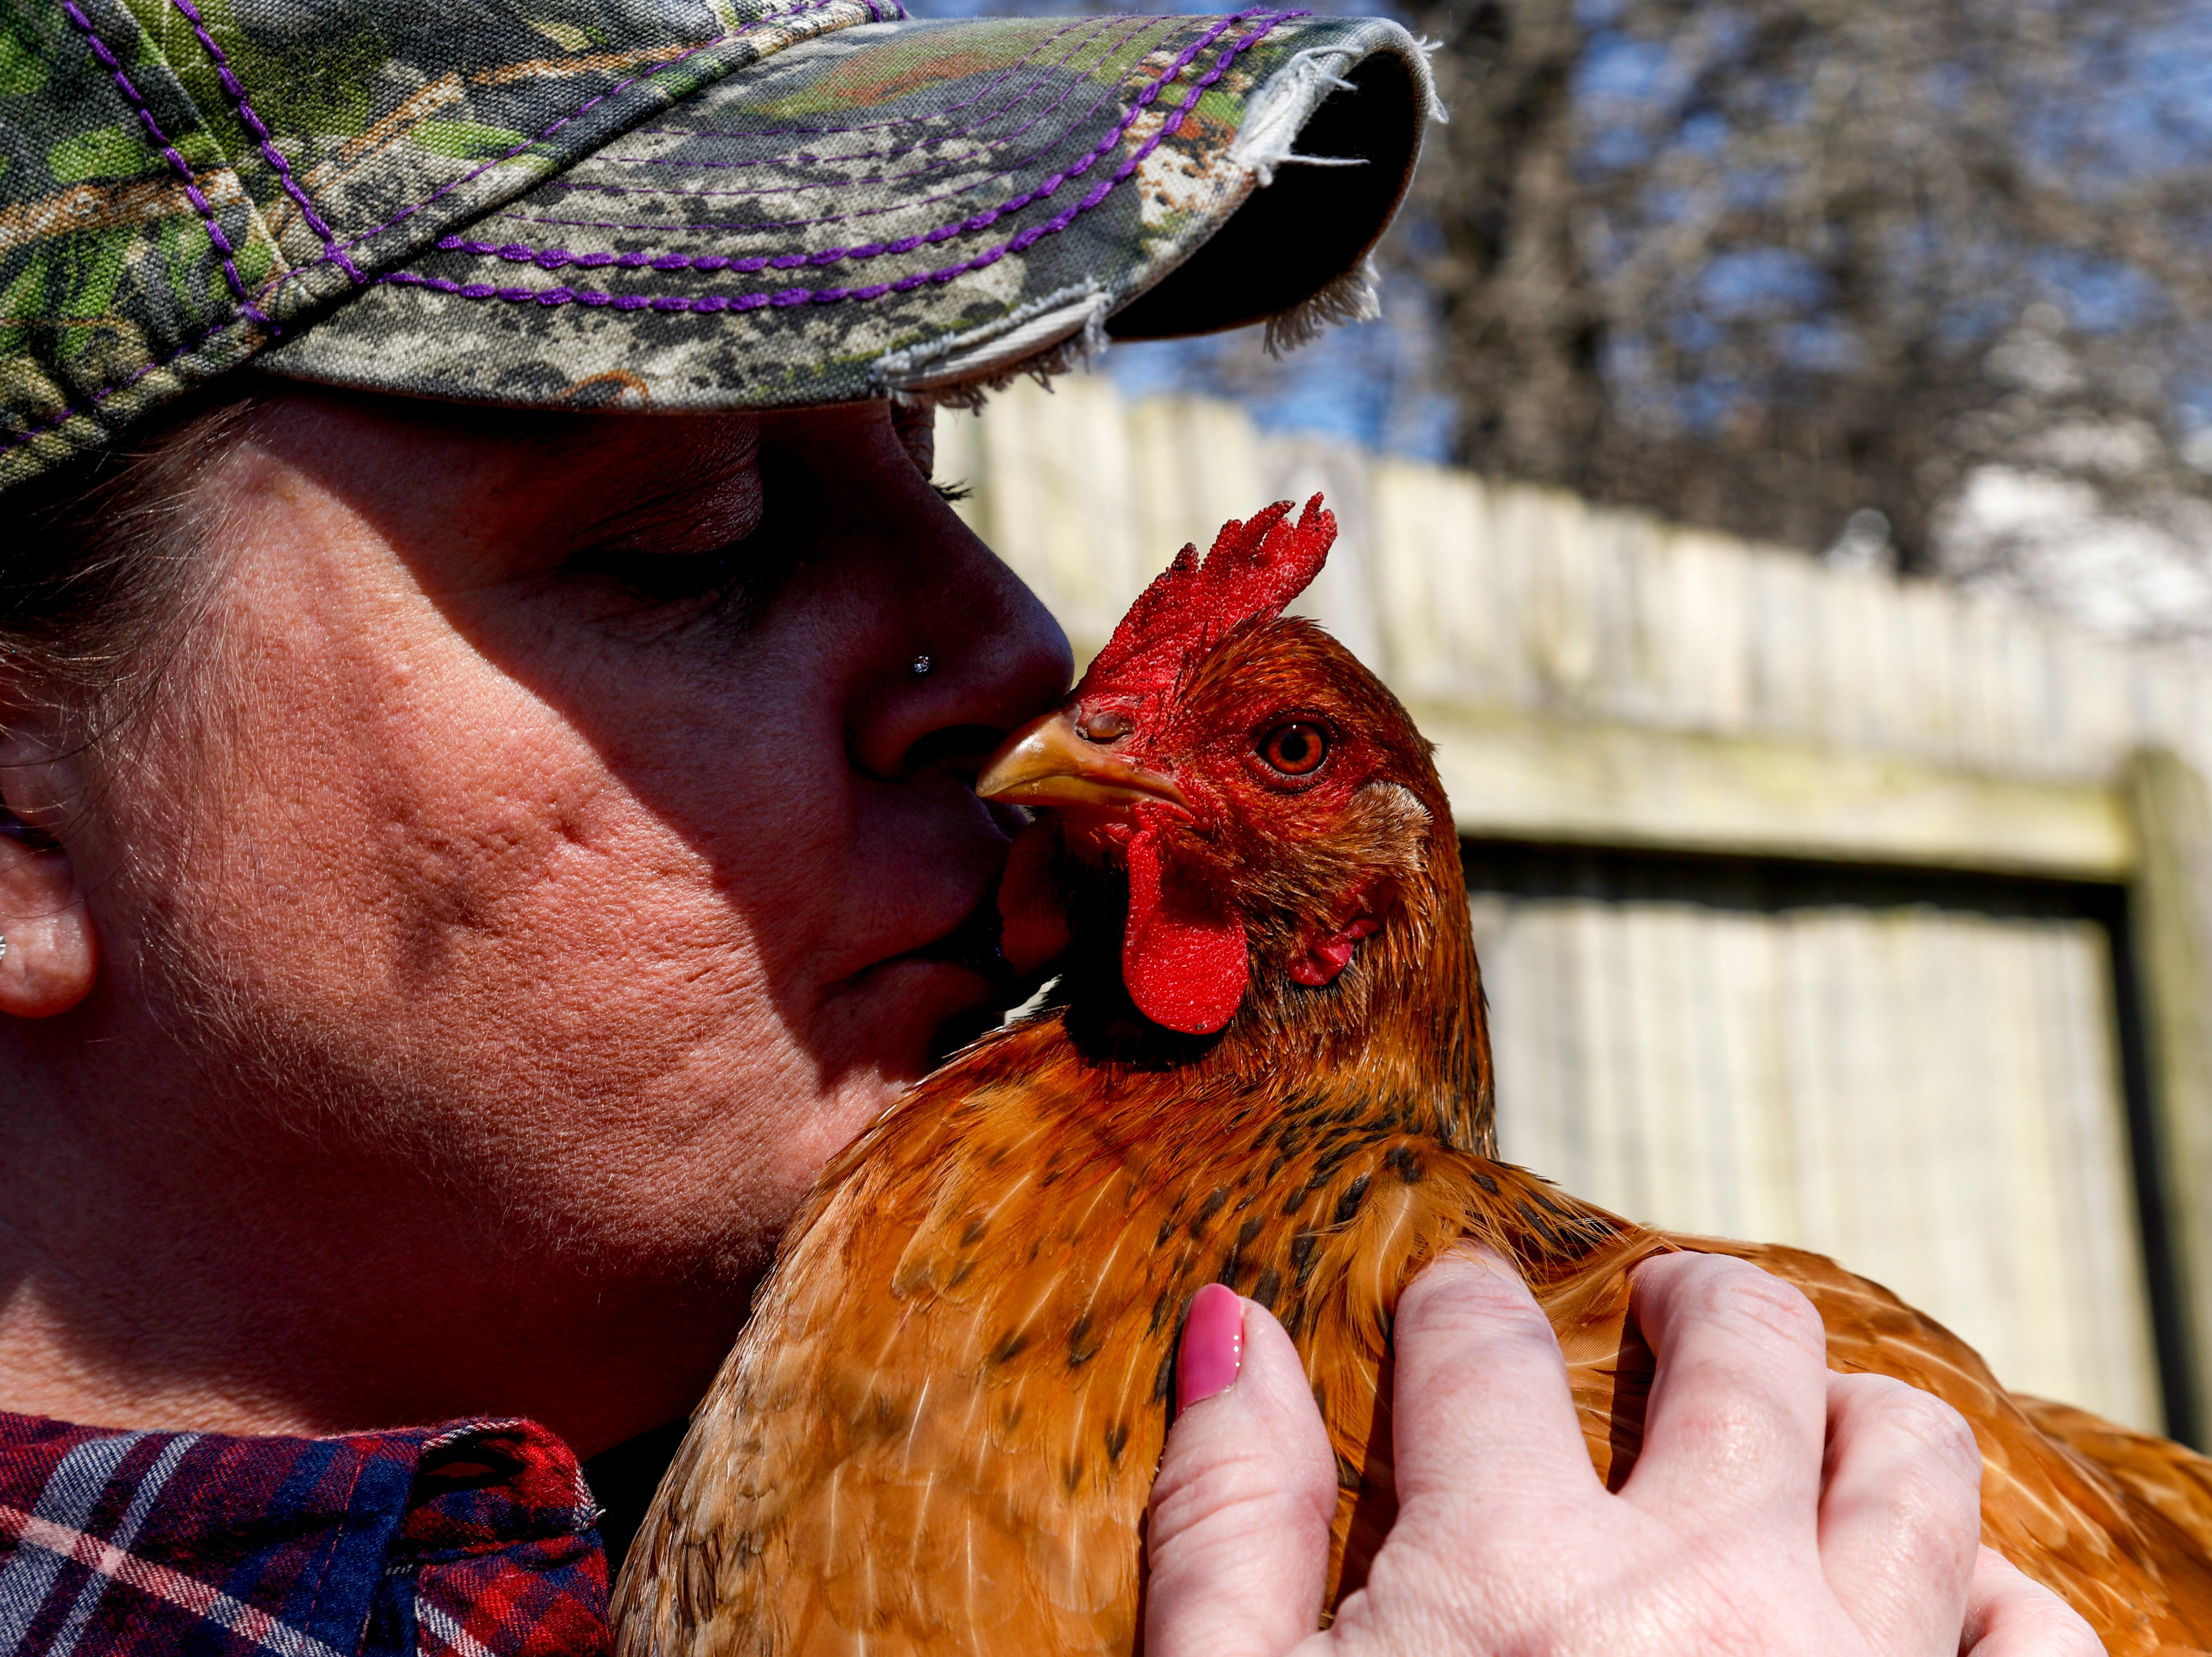 Shawna Lund kisses one of her oldest hens while visiting her flock she keeps in a fenced area in her backyard at Lund's home in Clarksville, Tenn., on Wednesday, March 6, 2019.